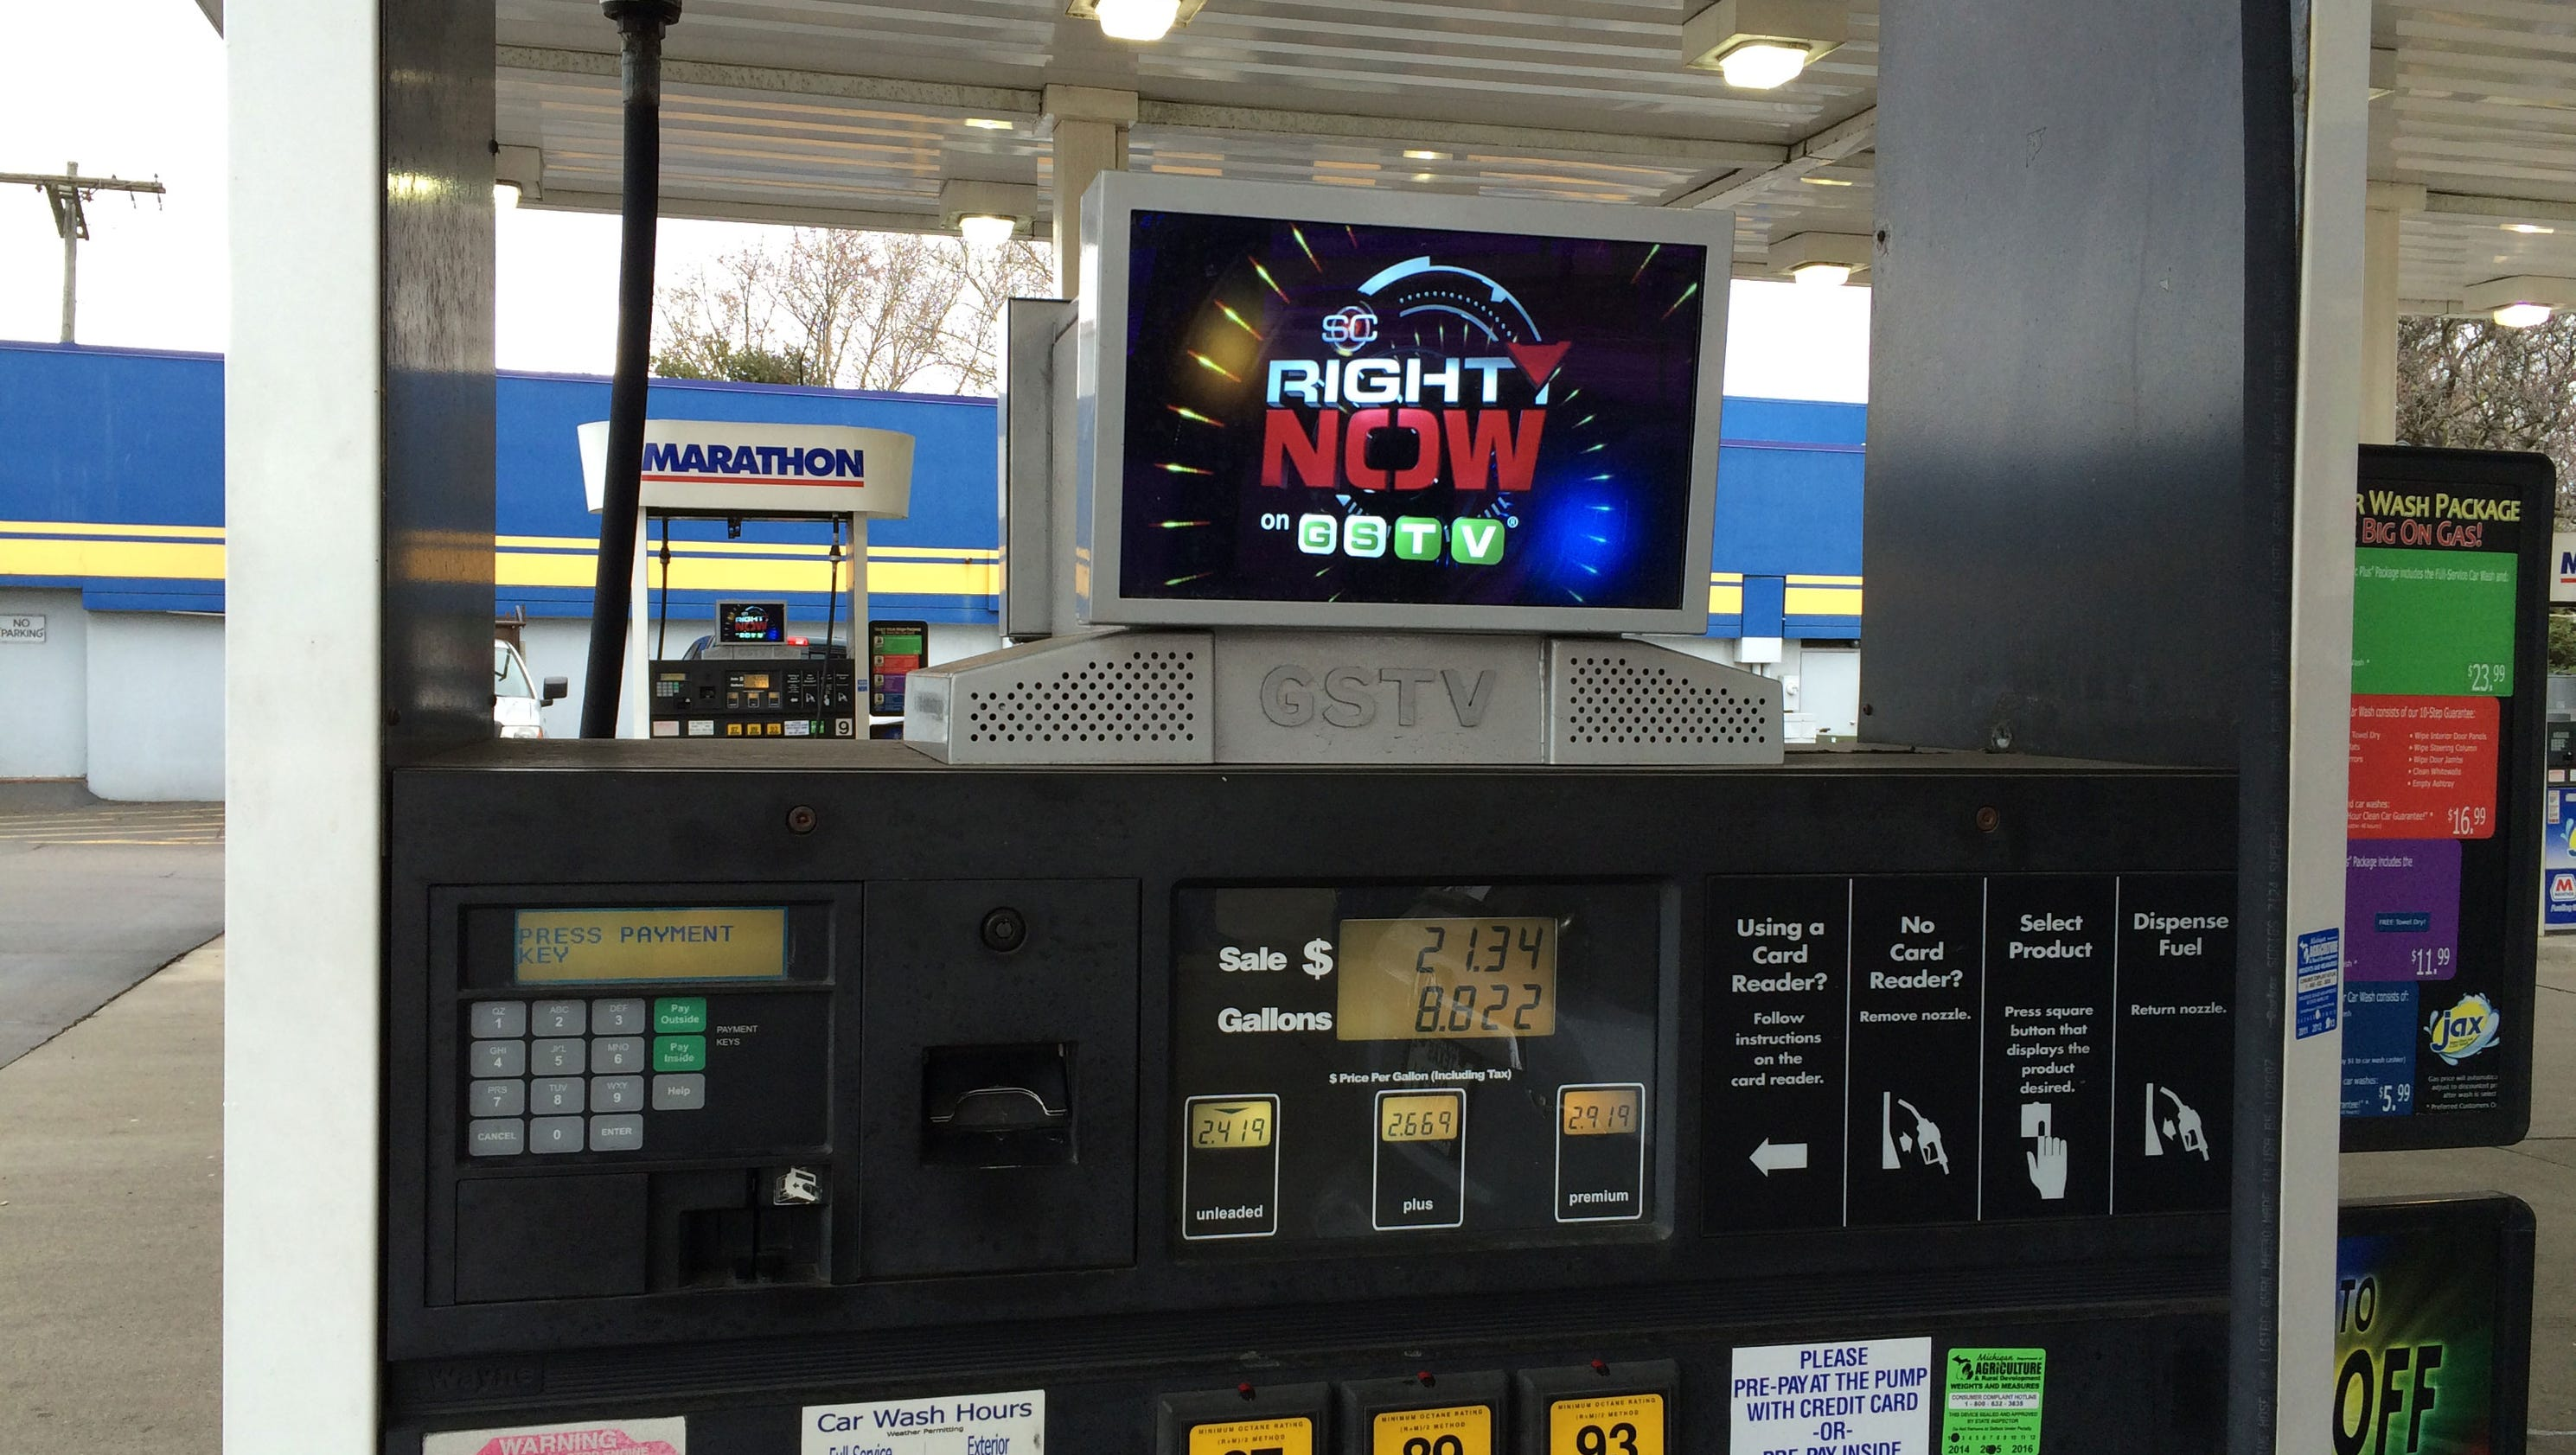 7 11 Gas Card >> Tom Walsh: Gas Station TV moves pumps more growth into ...